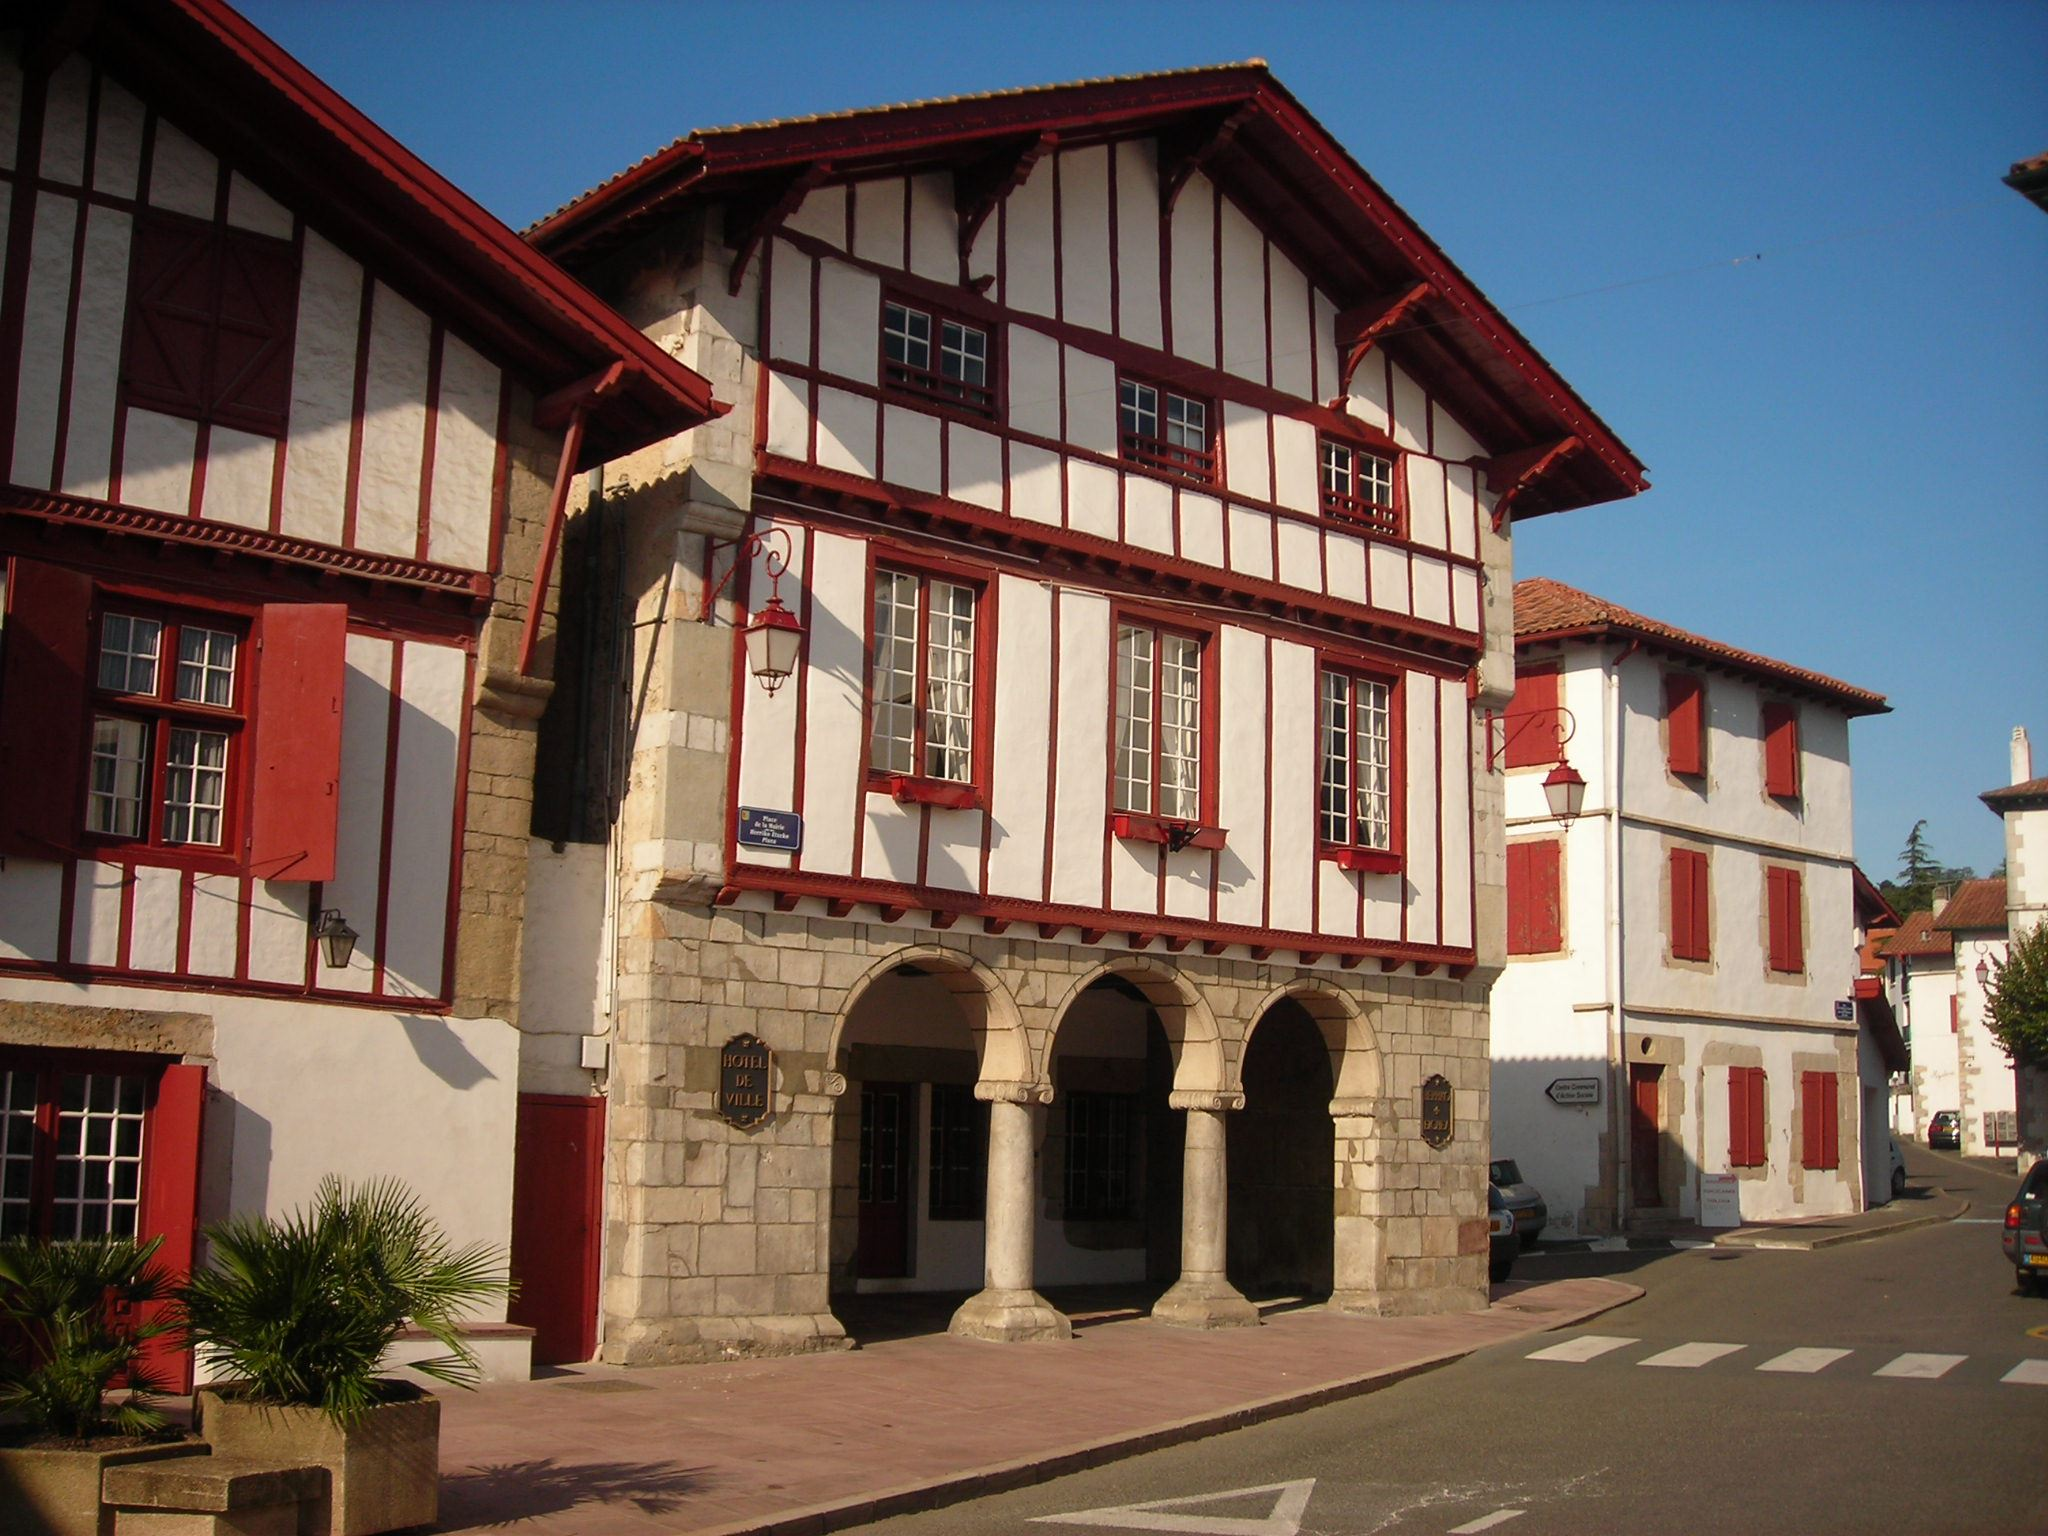 Urrugne : un village au Pays Basque.